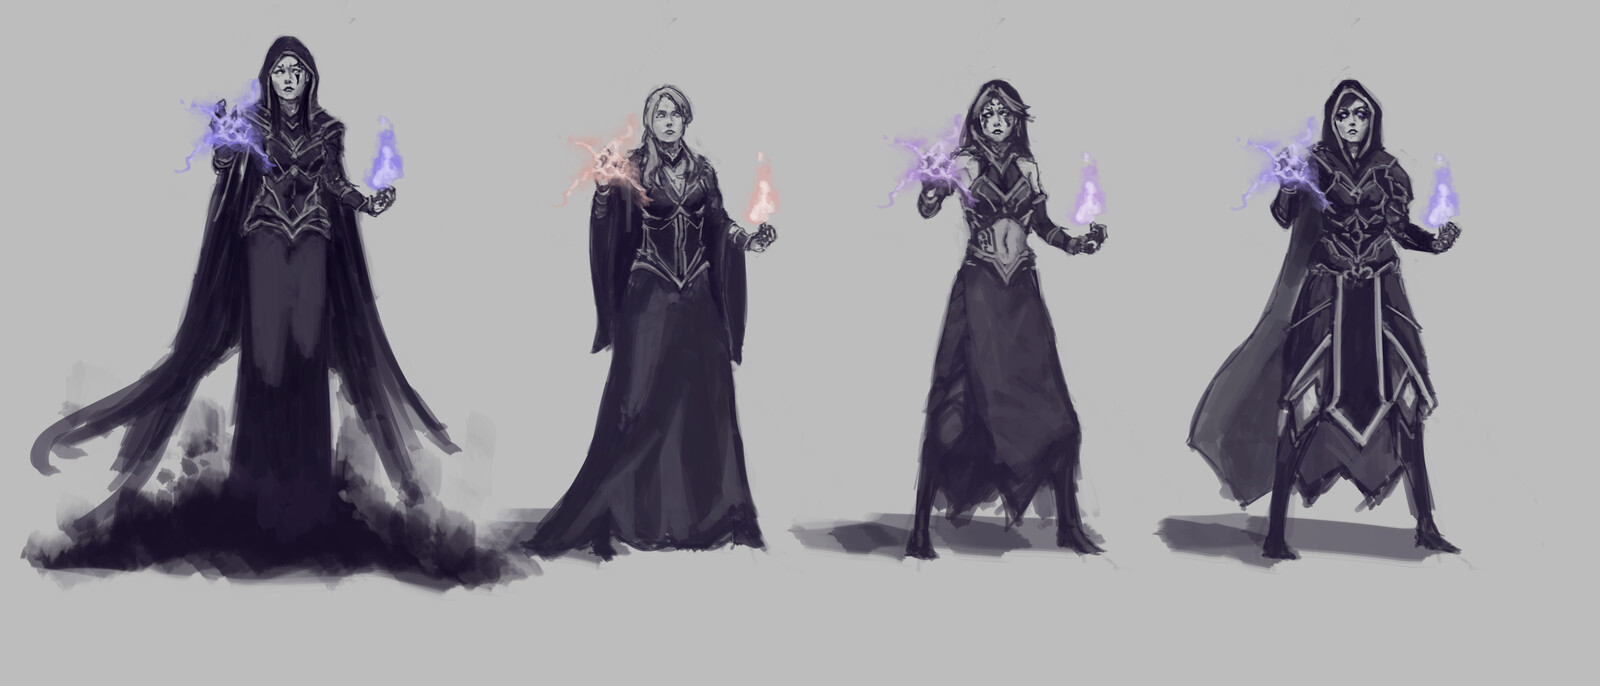 bw mage concepts